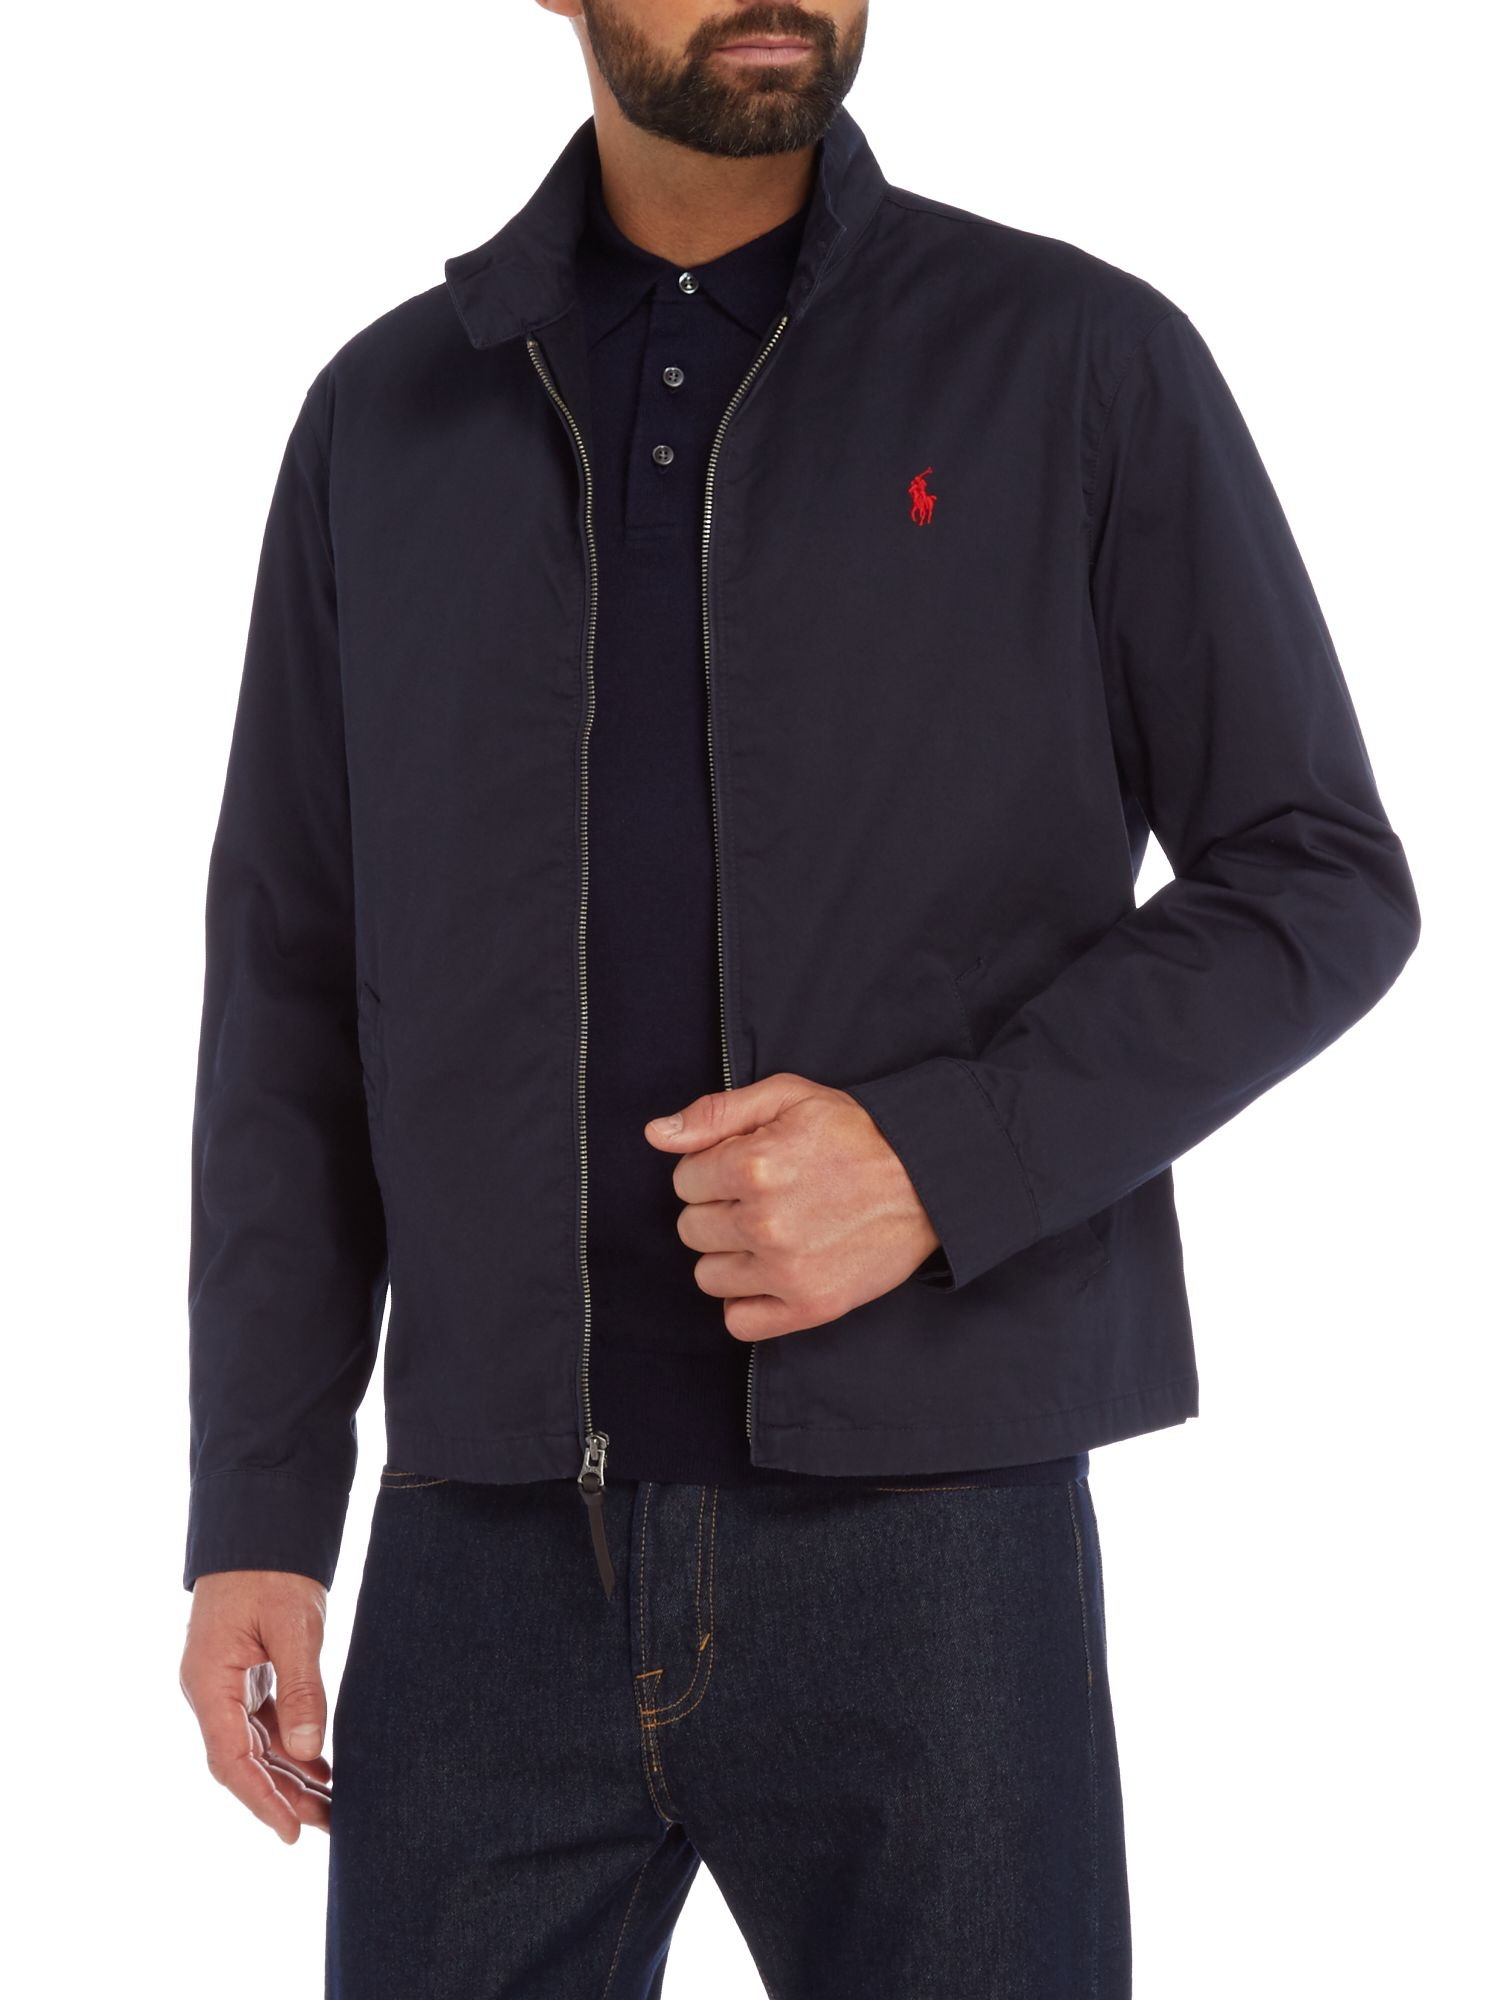 Polo Ralph Lauren Barracuda Lined Jacket Polo Ralph Lauren Barracuda Lined  Jacket